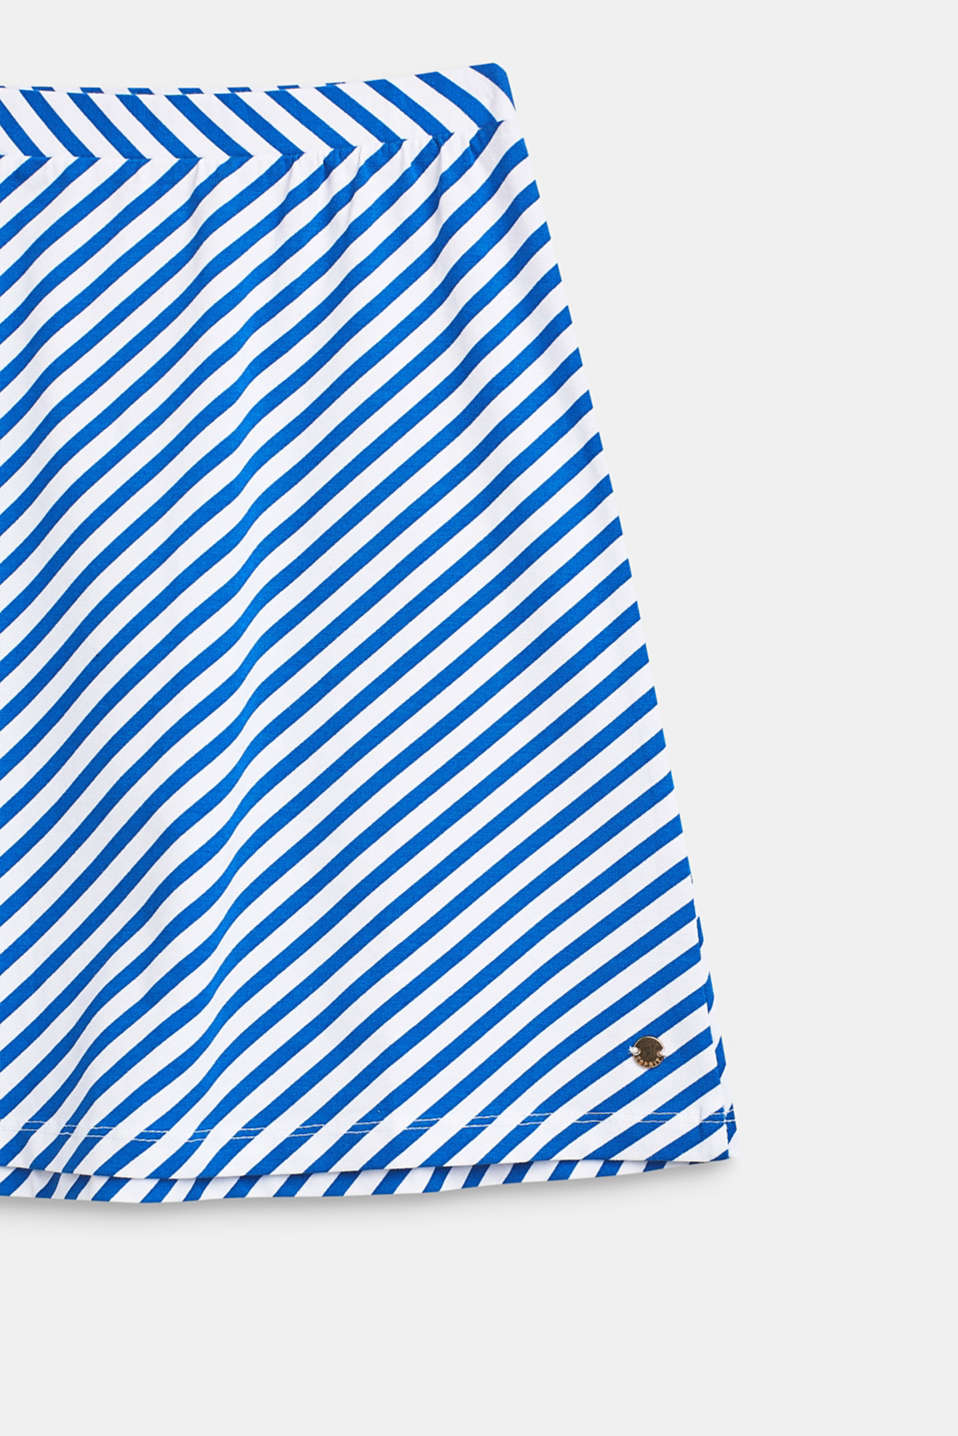 Striped stretch jersey skirt, LCINFINITY BLUE, detail image number 2